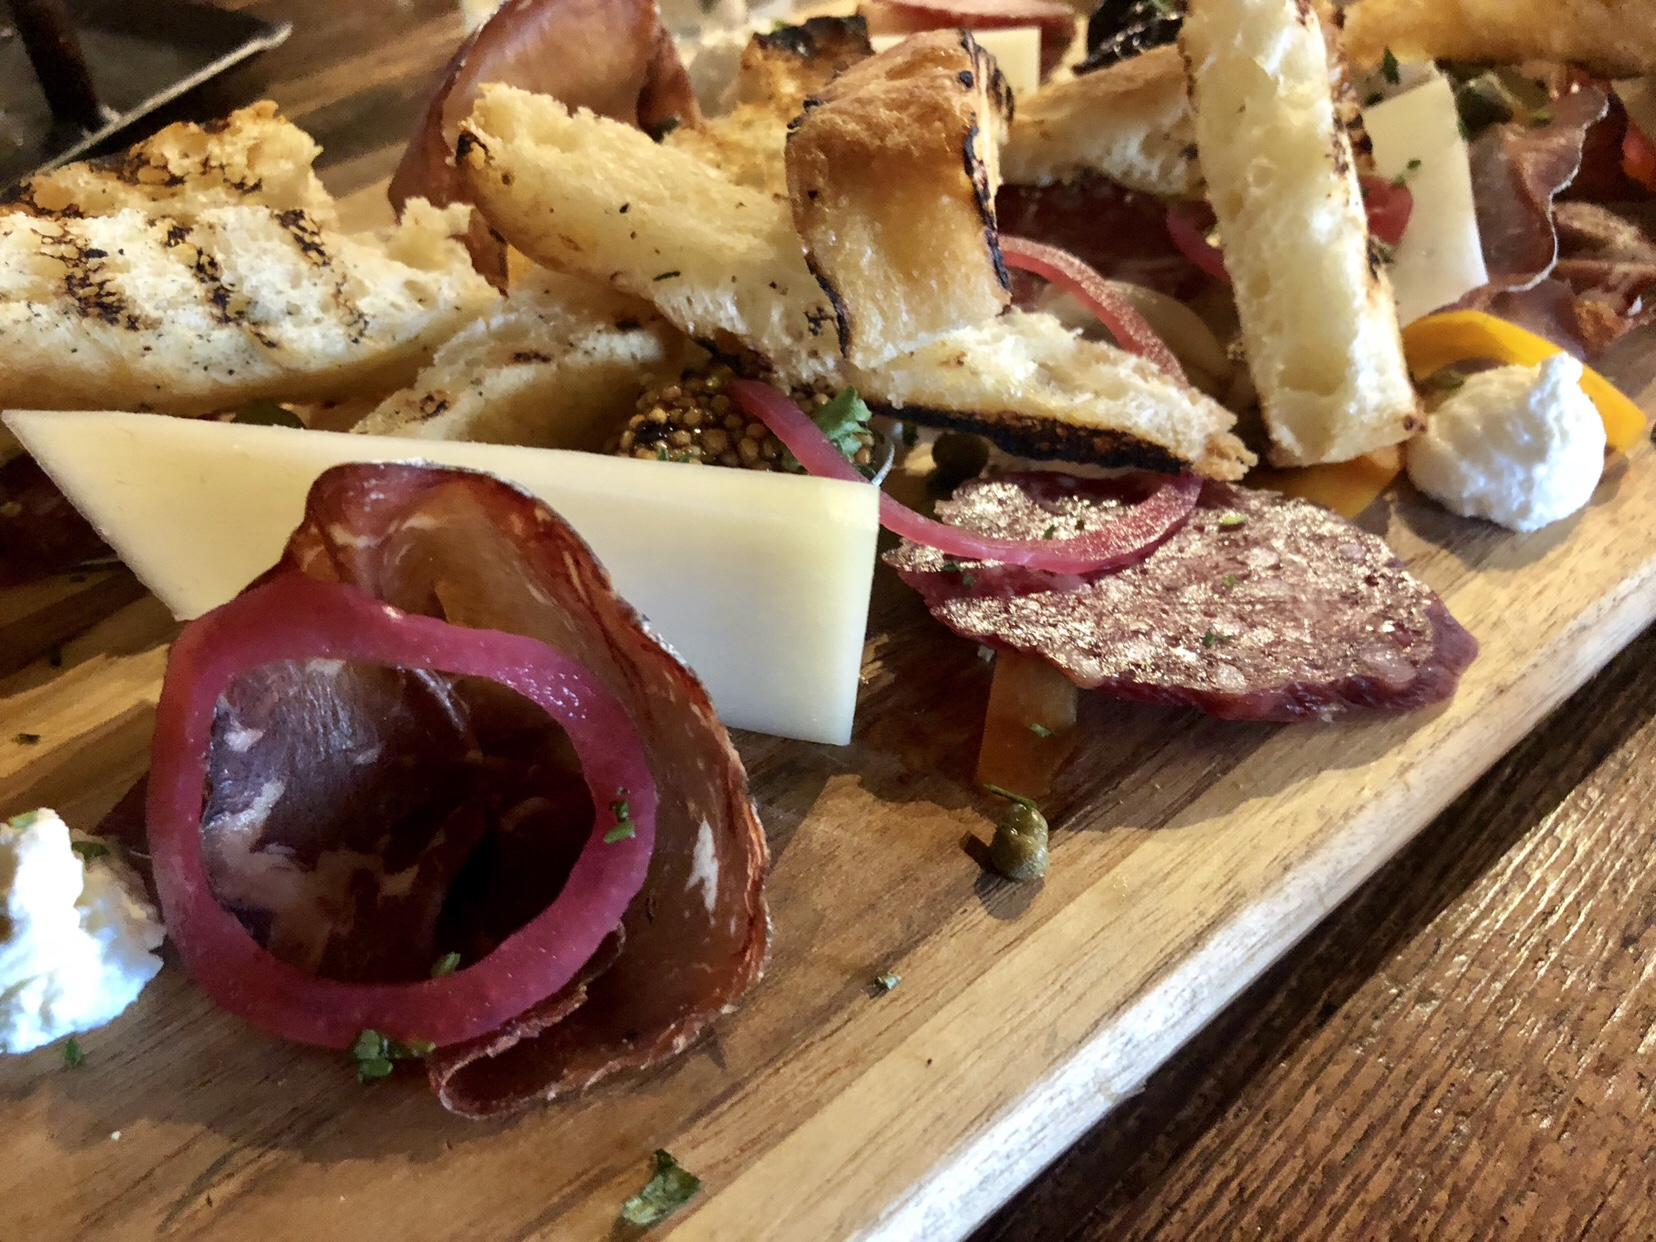 Selections from Charcuterie Station